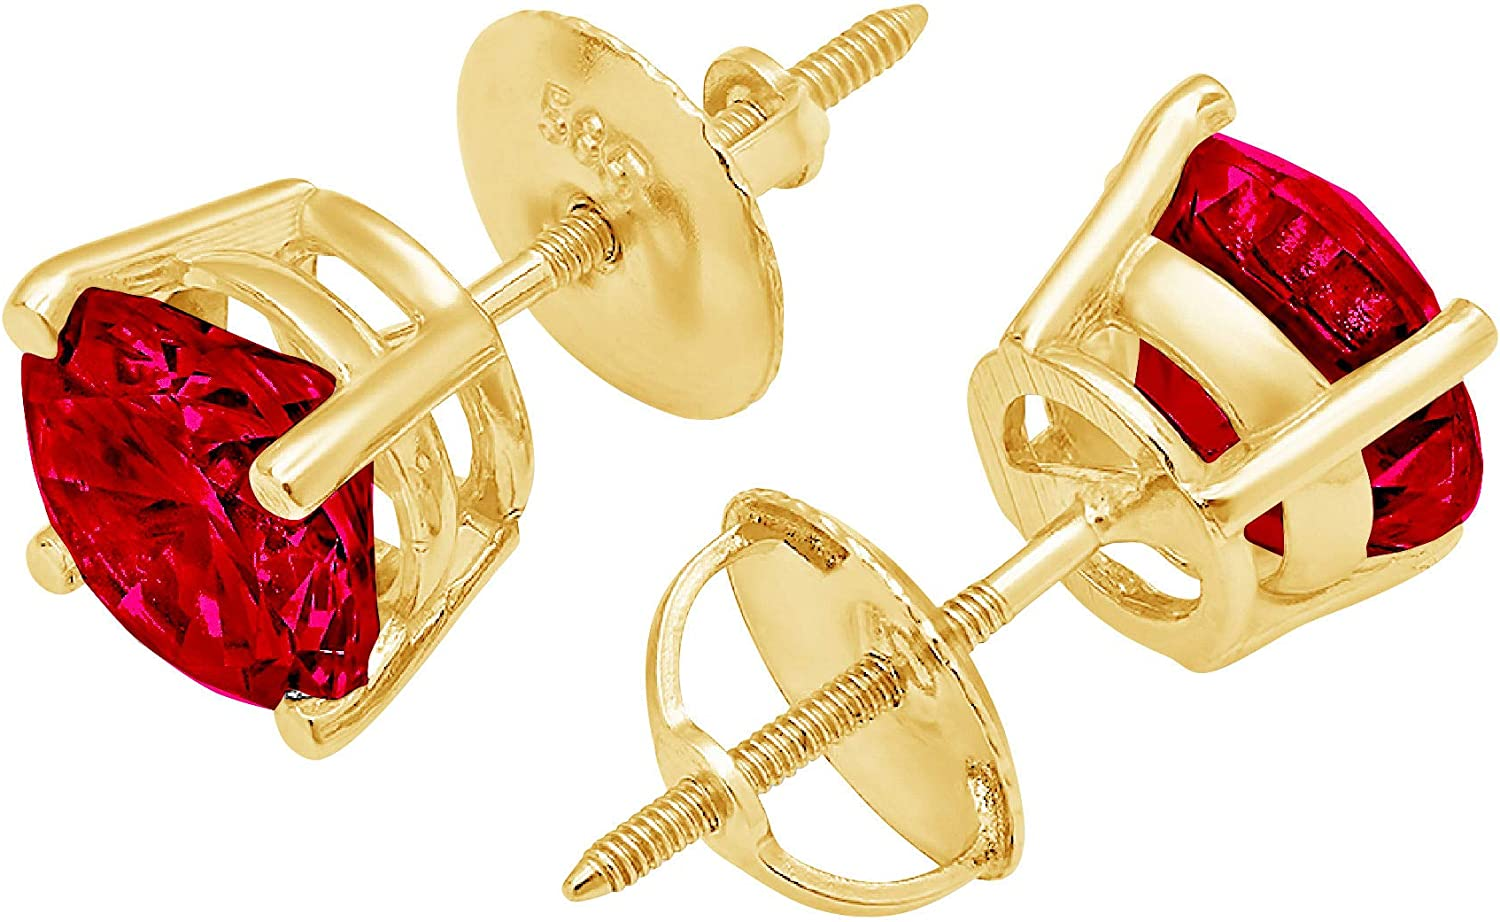 Clara Pucci 1.1 ct Brilliant Round Cut Solitaire VVS1 Flawless Simulated Ruby Gemstone Pair of Stud Earrings Solid 18K Yellow Gold Screw Back